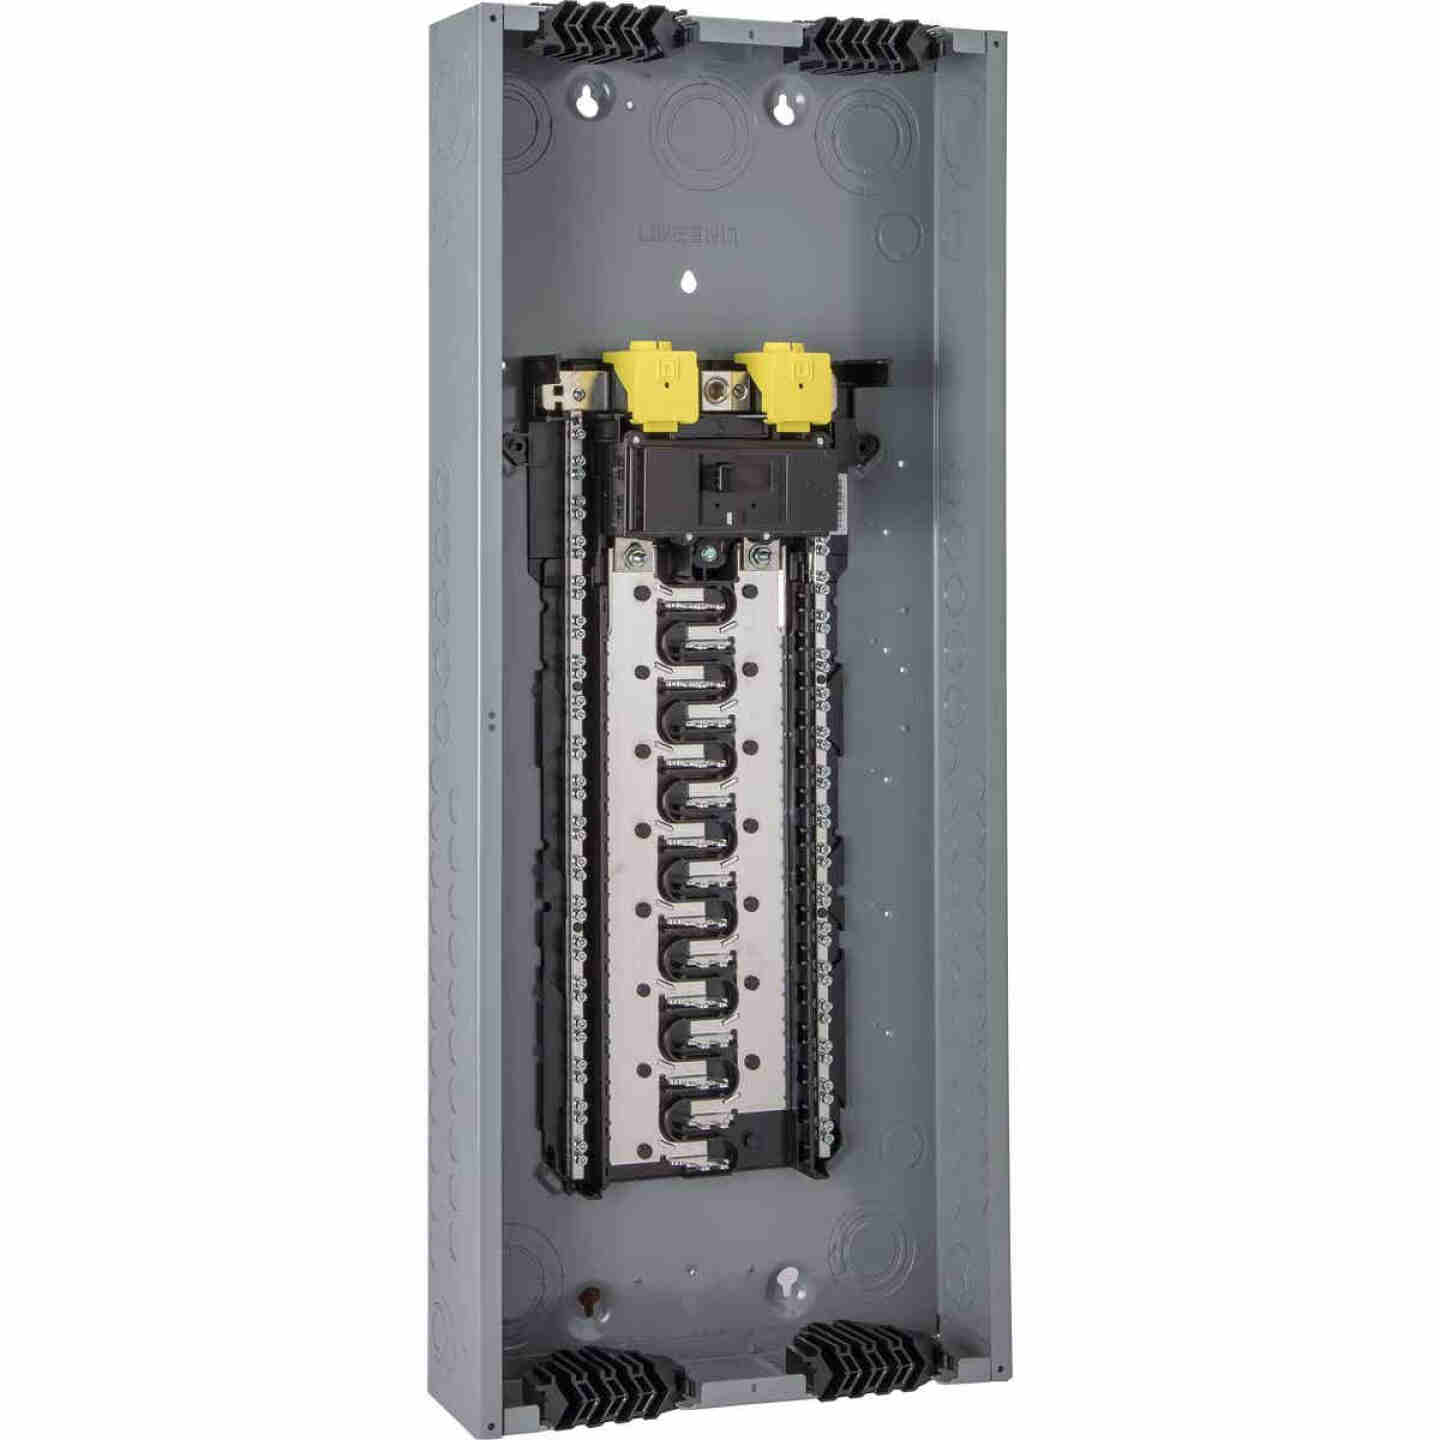 Square D Homeline Qwik-Grip 200A 80-Circuit 40-Space Indoor Main Breaker Plug-On Neutral Load Center Image 1